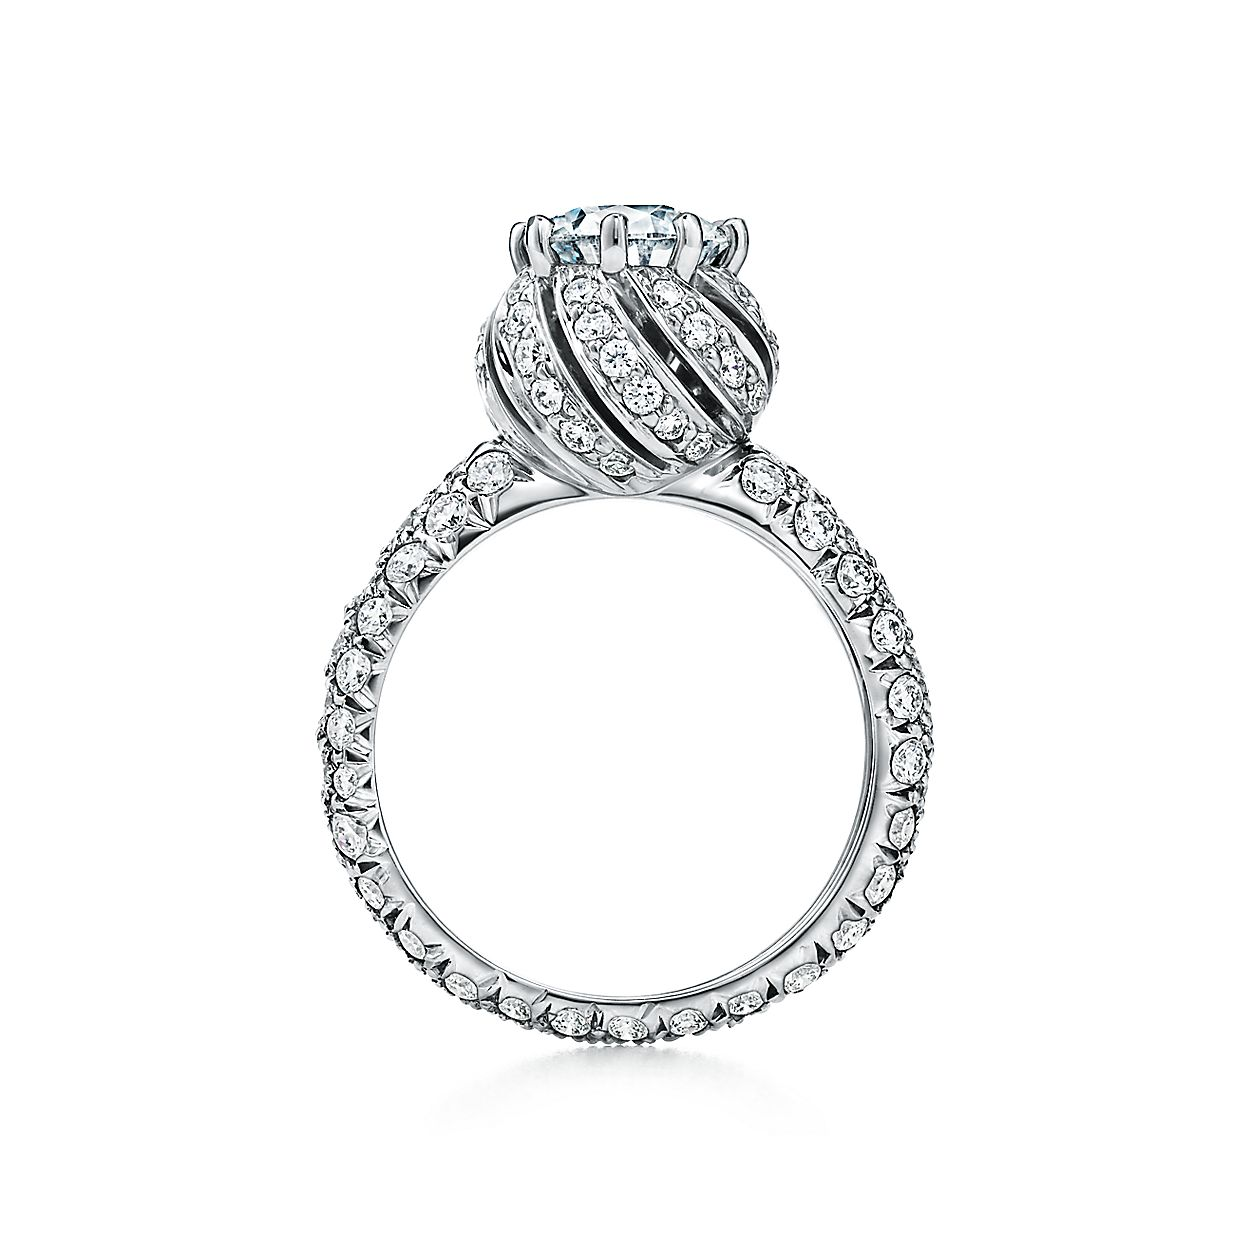 e85c3af22 Tiffany & Co. Schlumberger Buds Round Brilliant Engagement Ring with a  Diamond Platinum Band